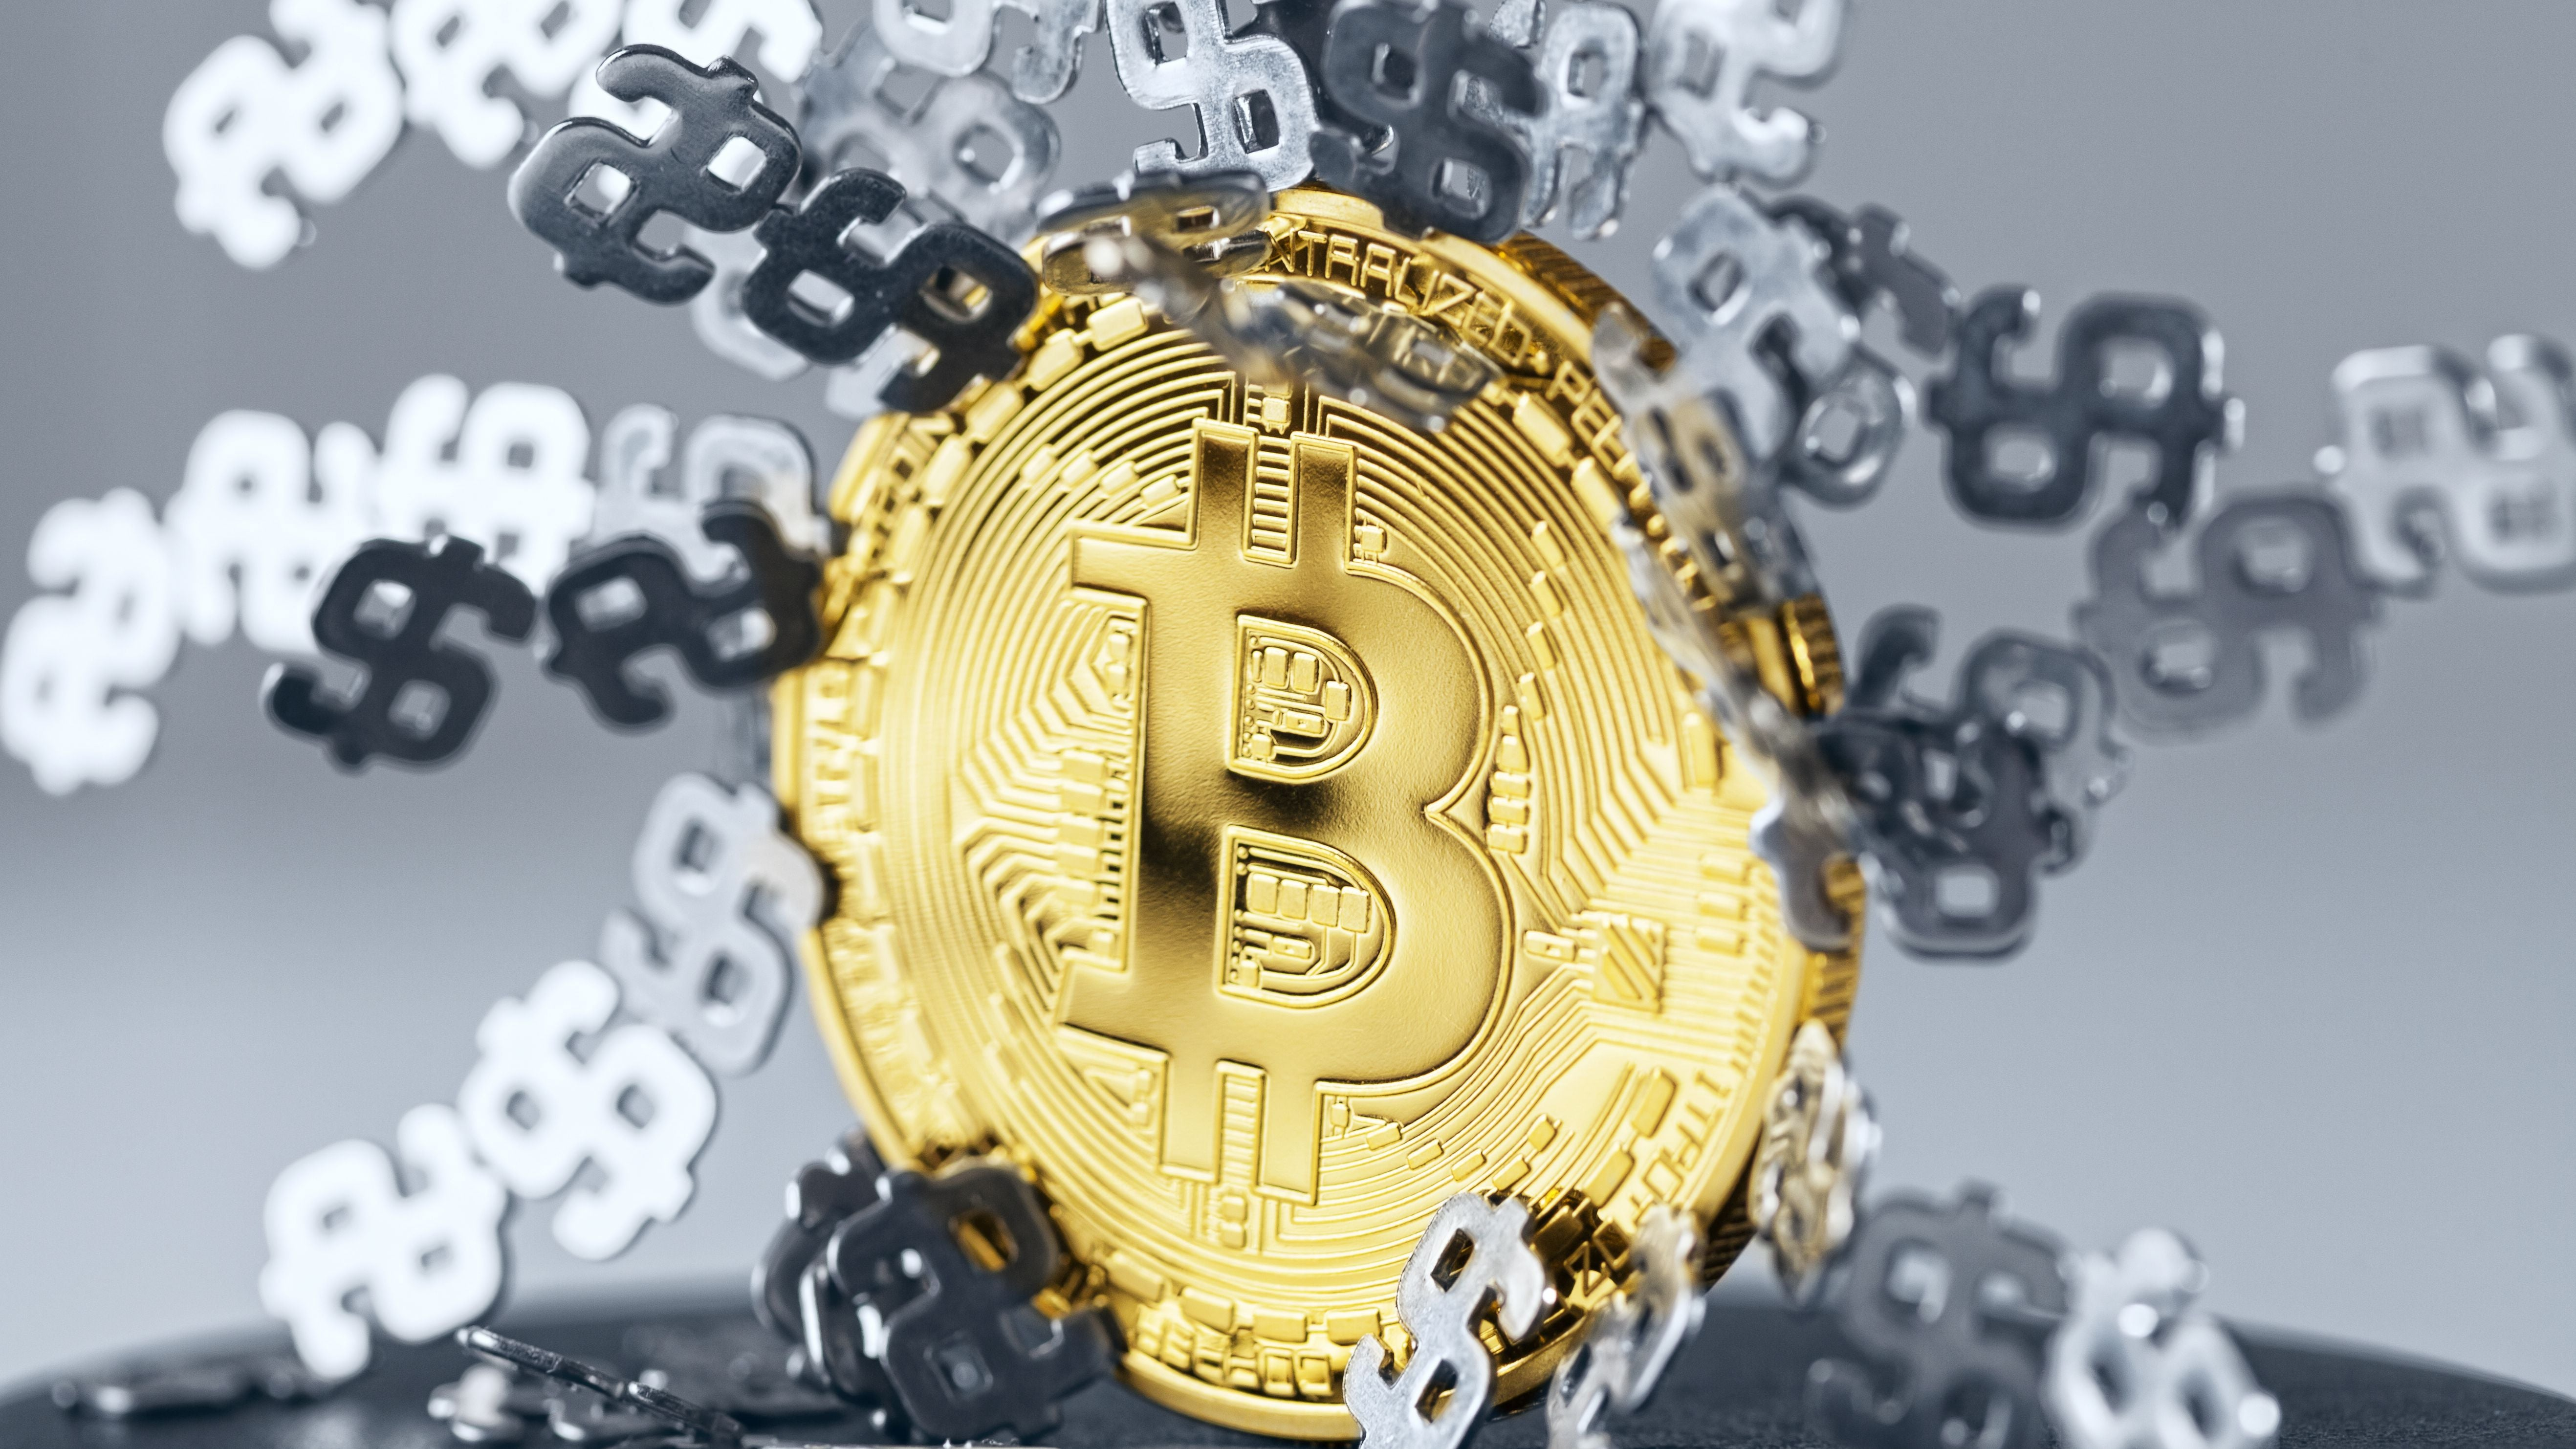 If You're Missing $US132,000 ($173,964) in Bitcoins Please Contact Us